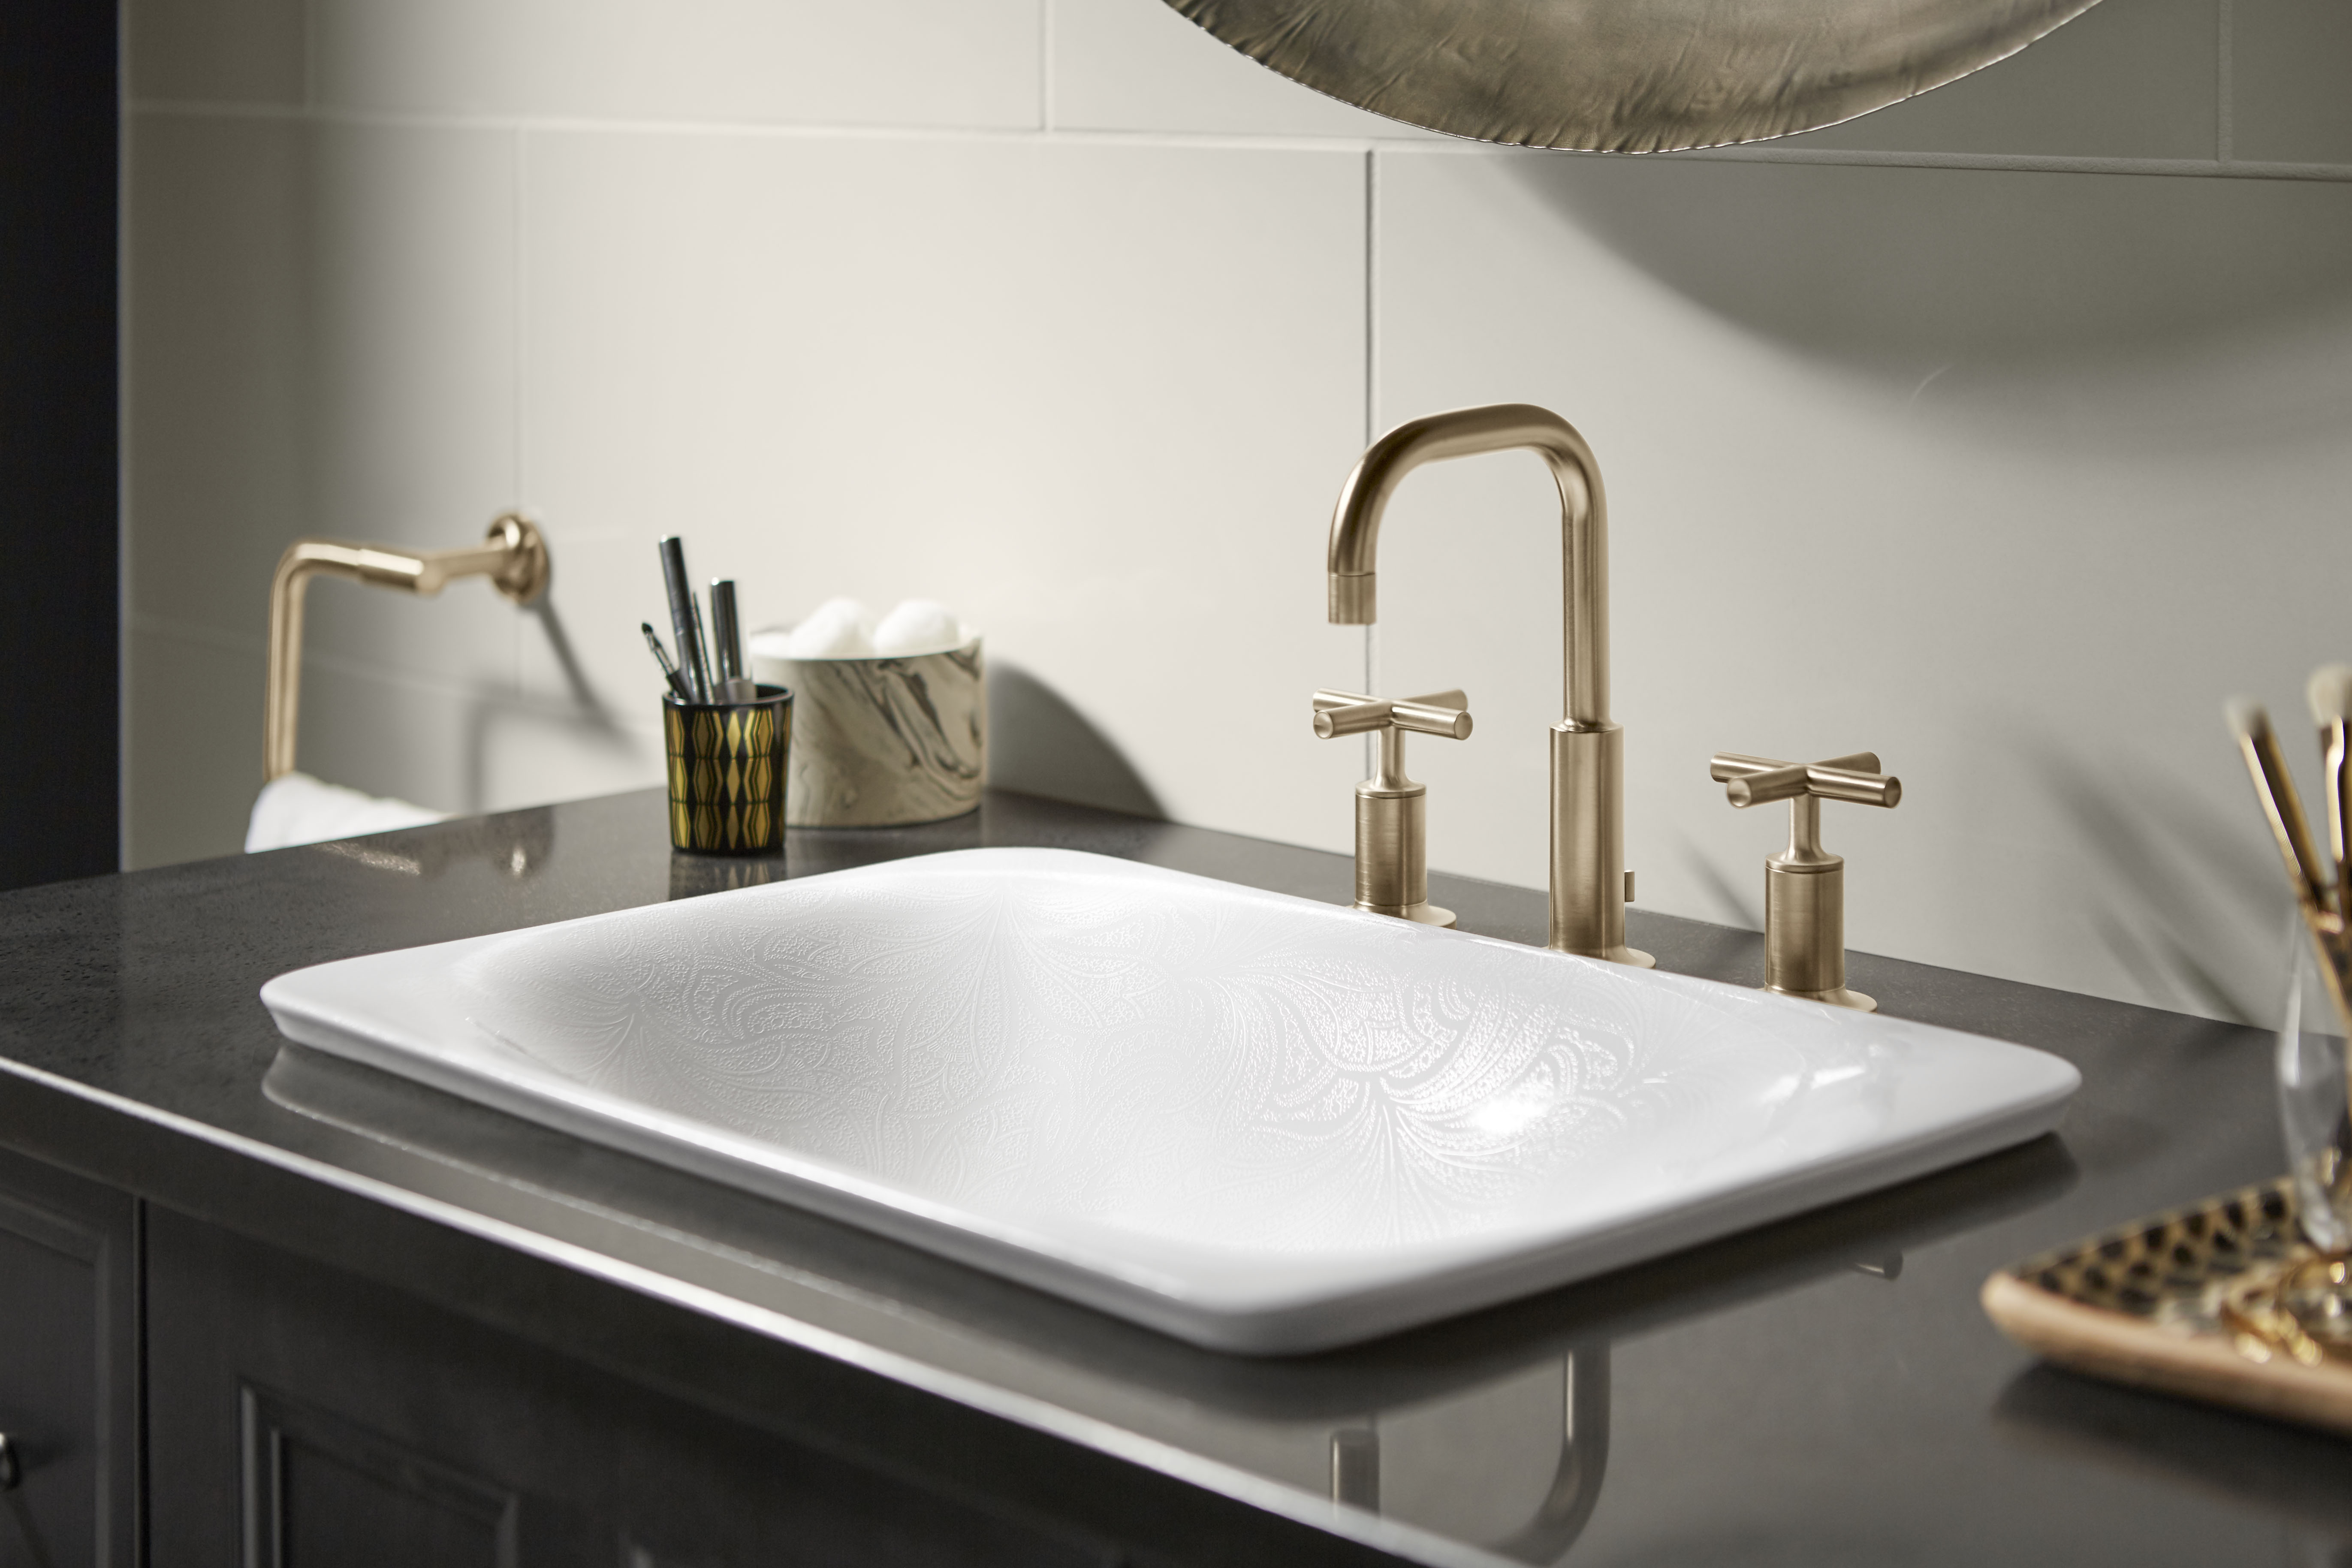 Purist® Faucet     Sartorial Carillon Sink     An uncommon pairing of minimalism and materiality – applying Vibrant® Brushed Bronze to this simple modern faucet creates a luxurious look.